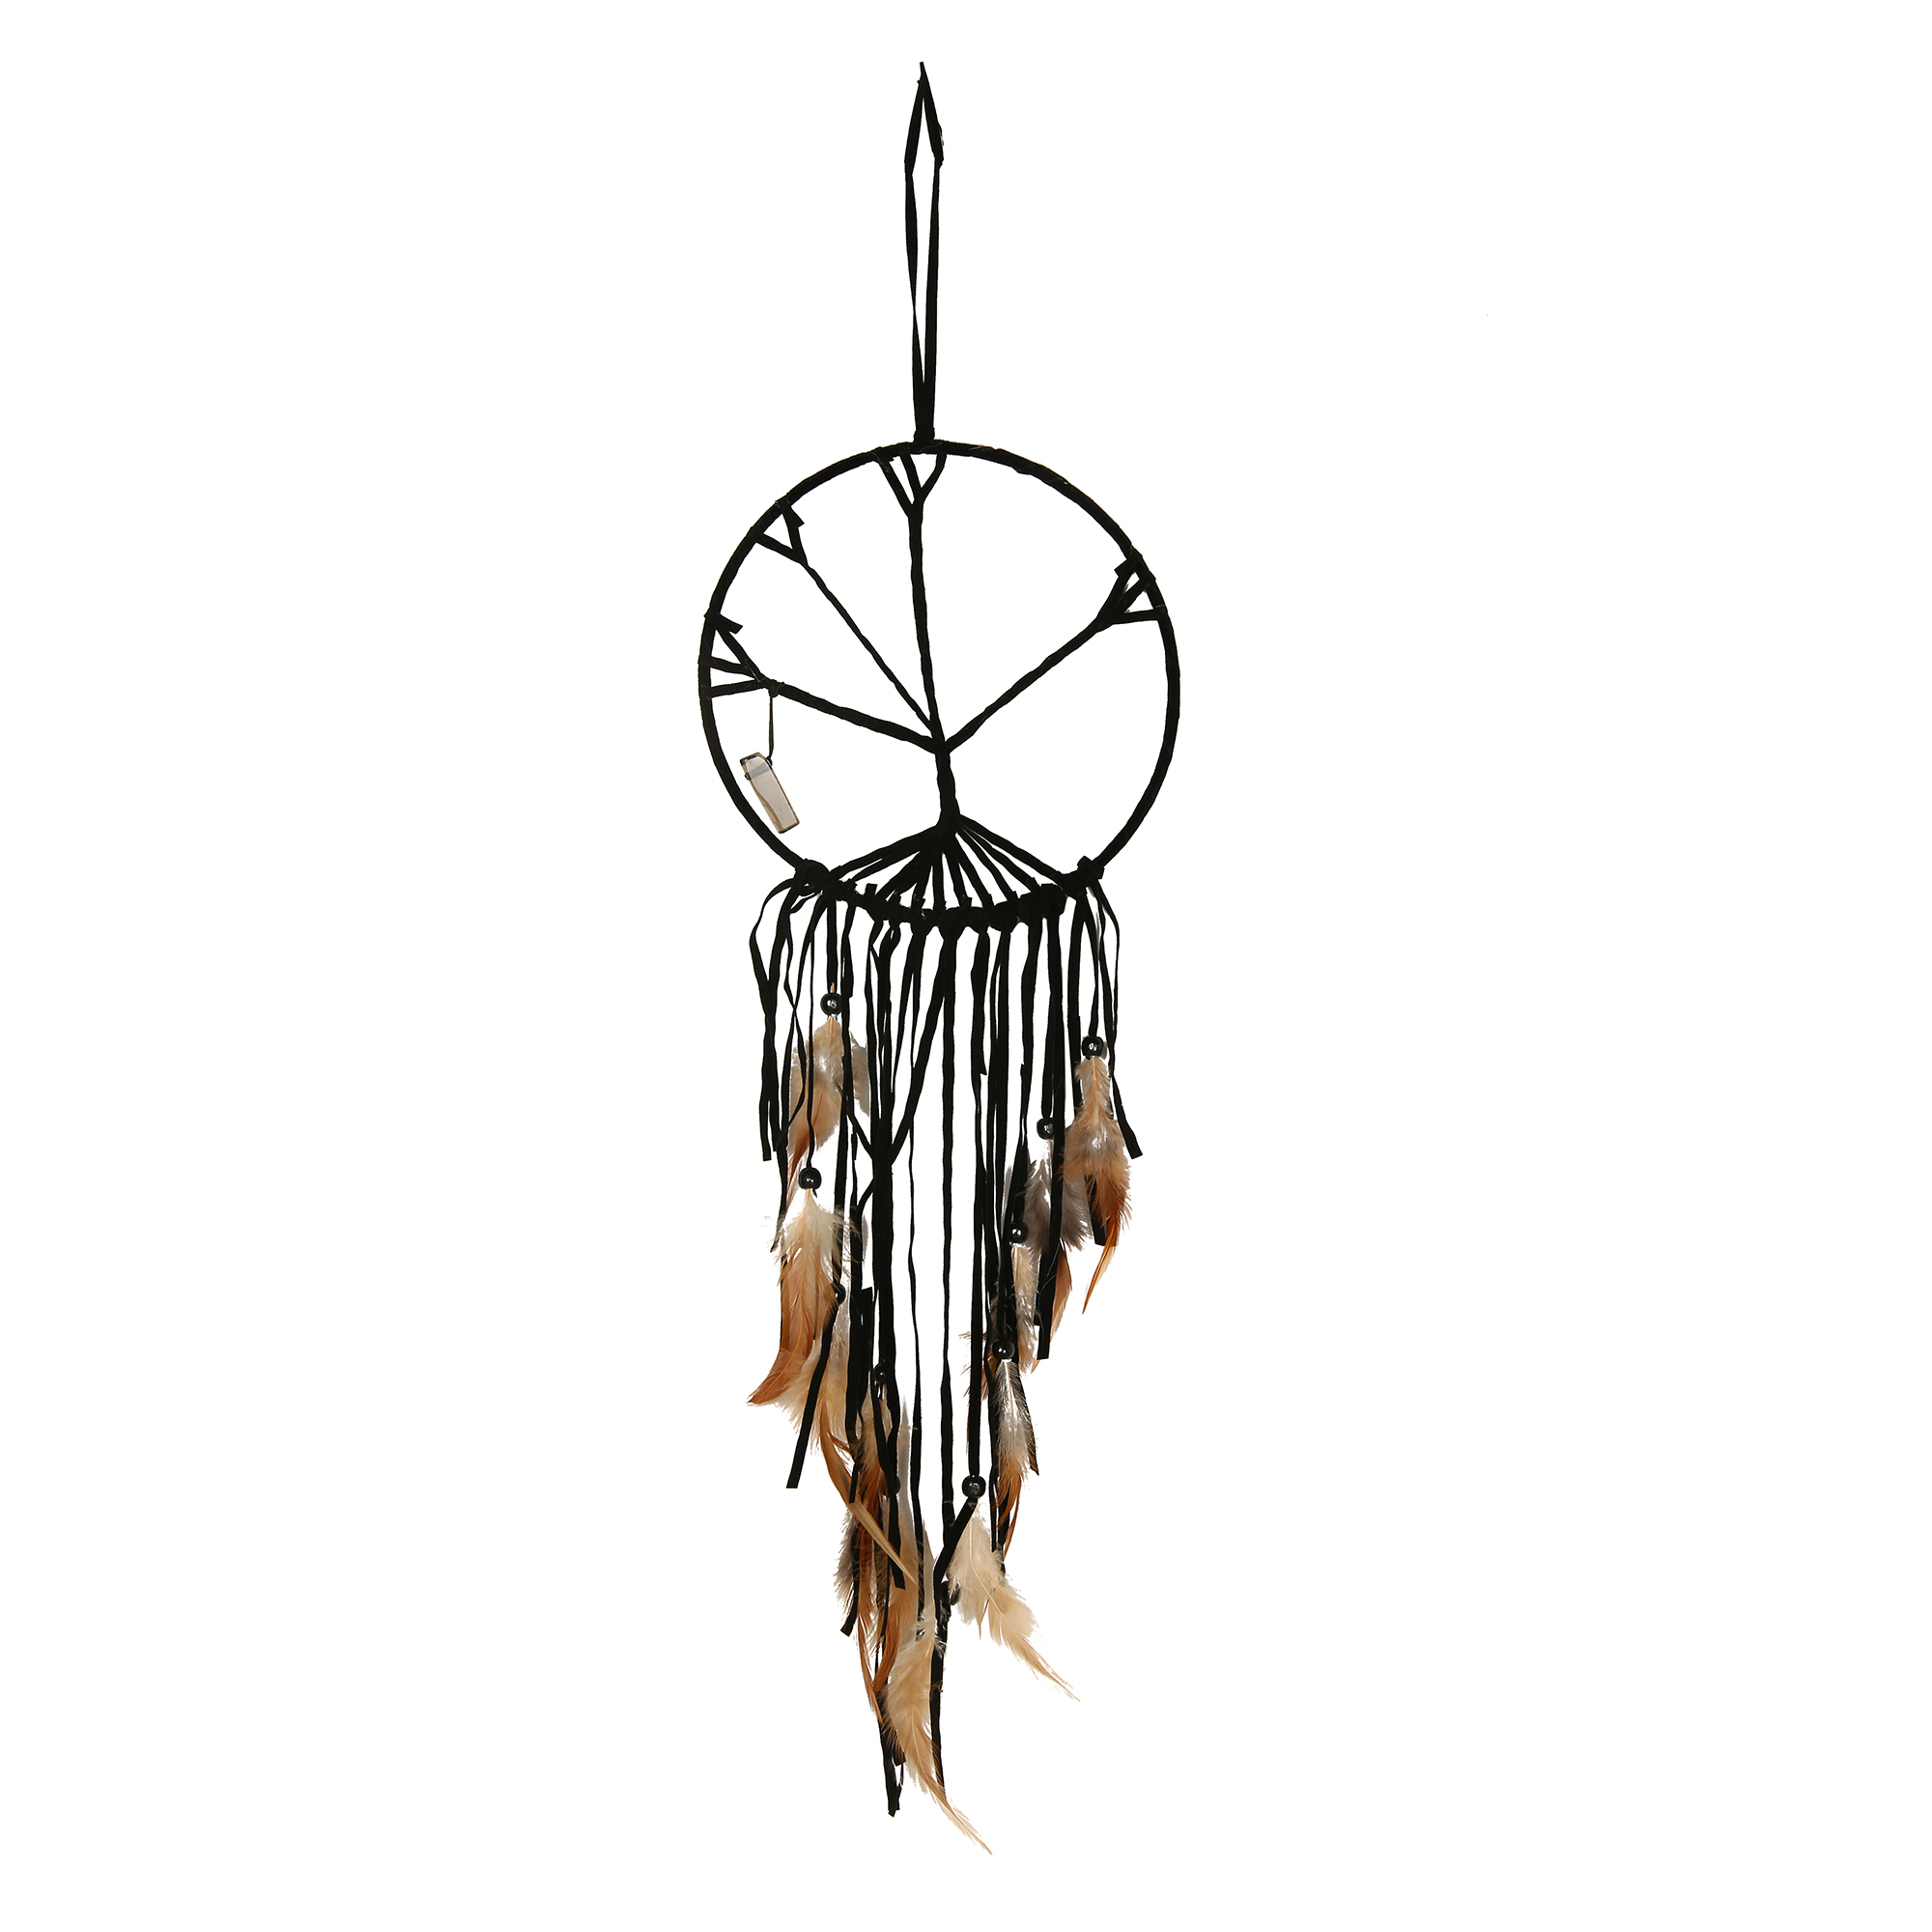 1pcs Dream Catcher Chime The Tree of Life Net Bead Feather Dreamcatcher Indian Style For Home Hanging Ornaments Decor